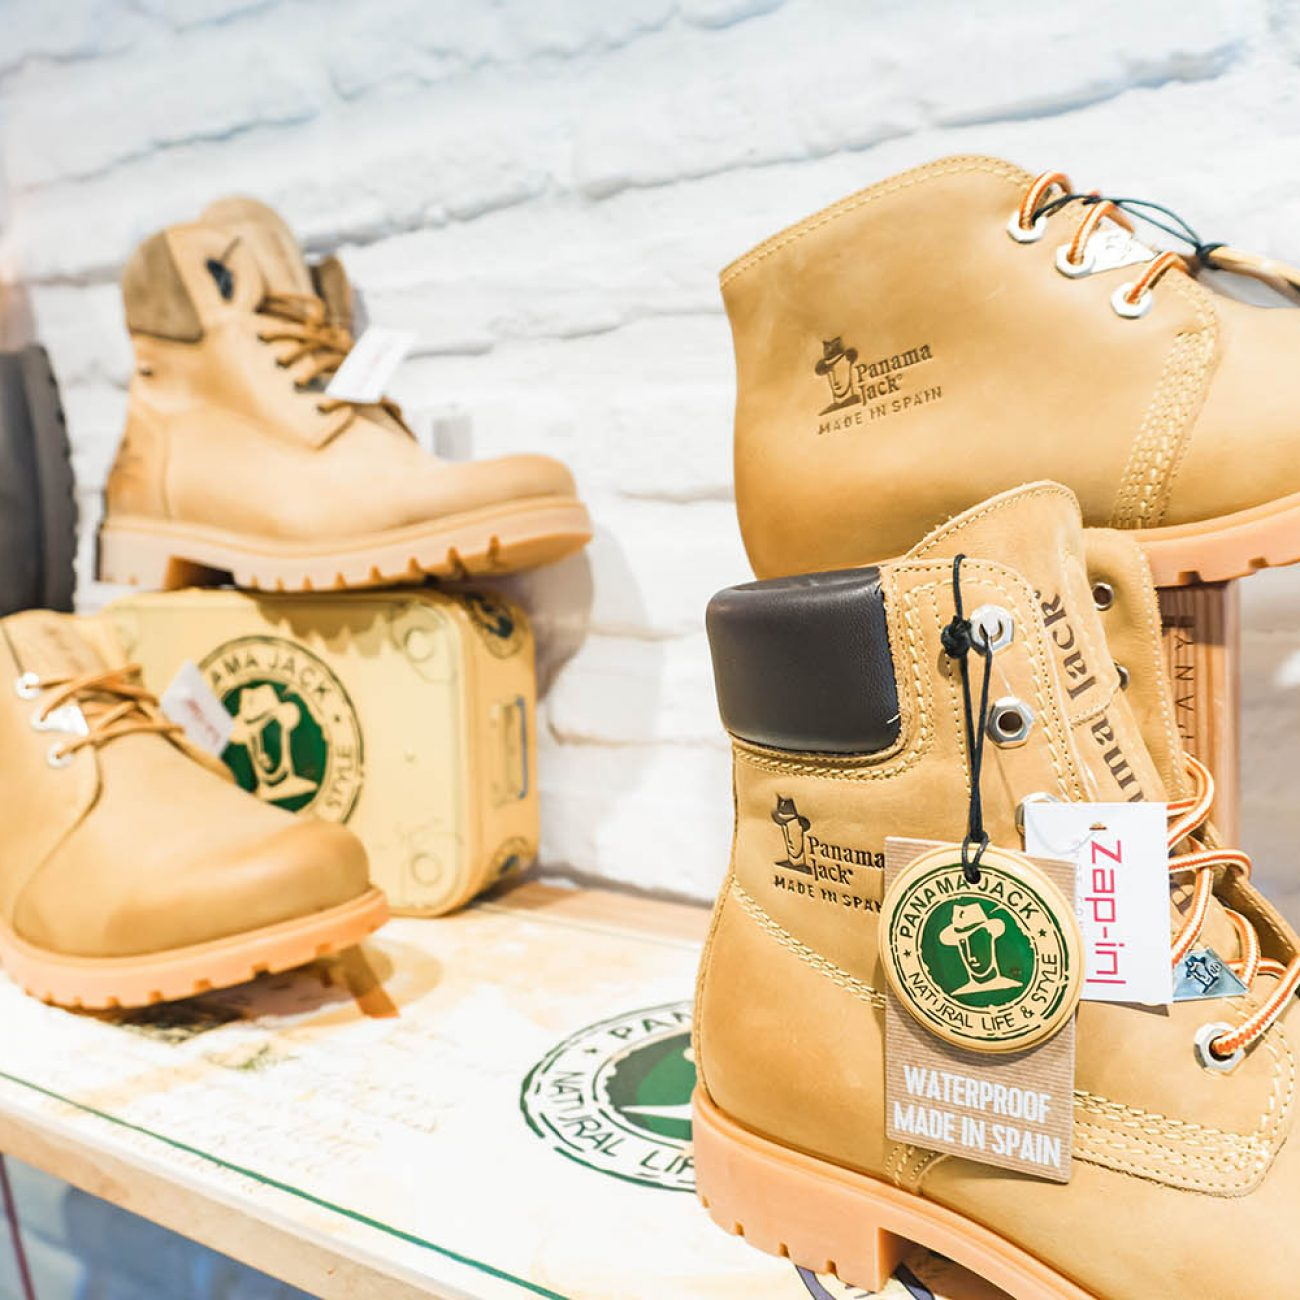 ZAP-IN SHOES COMPANY